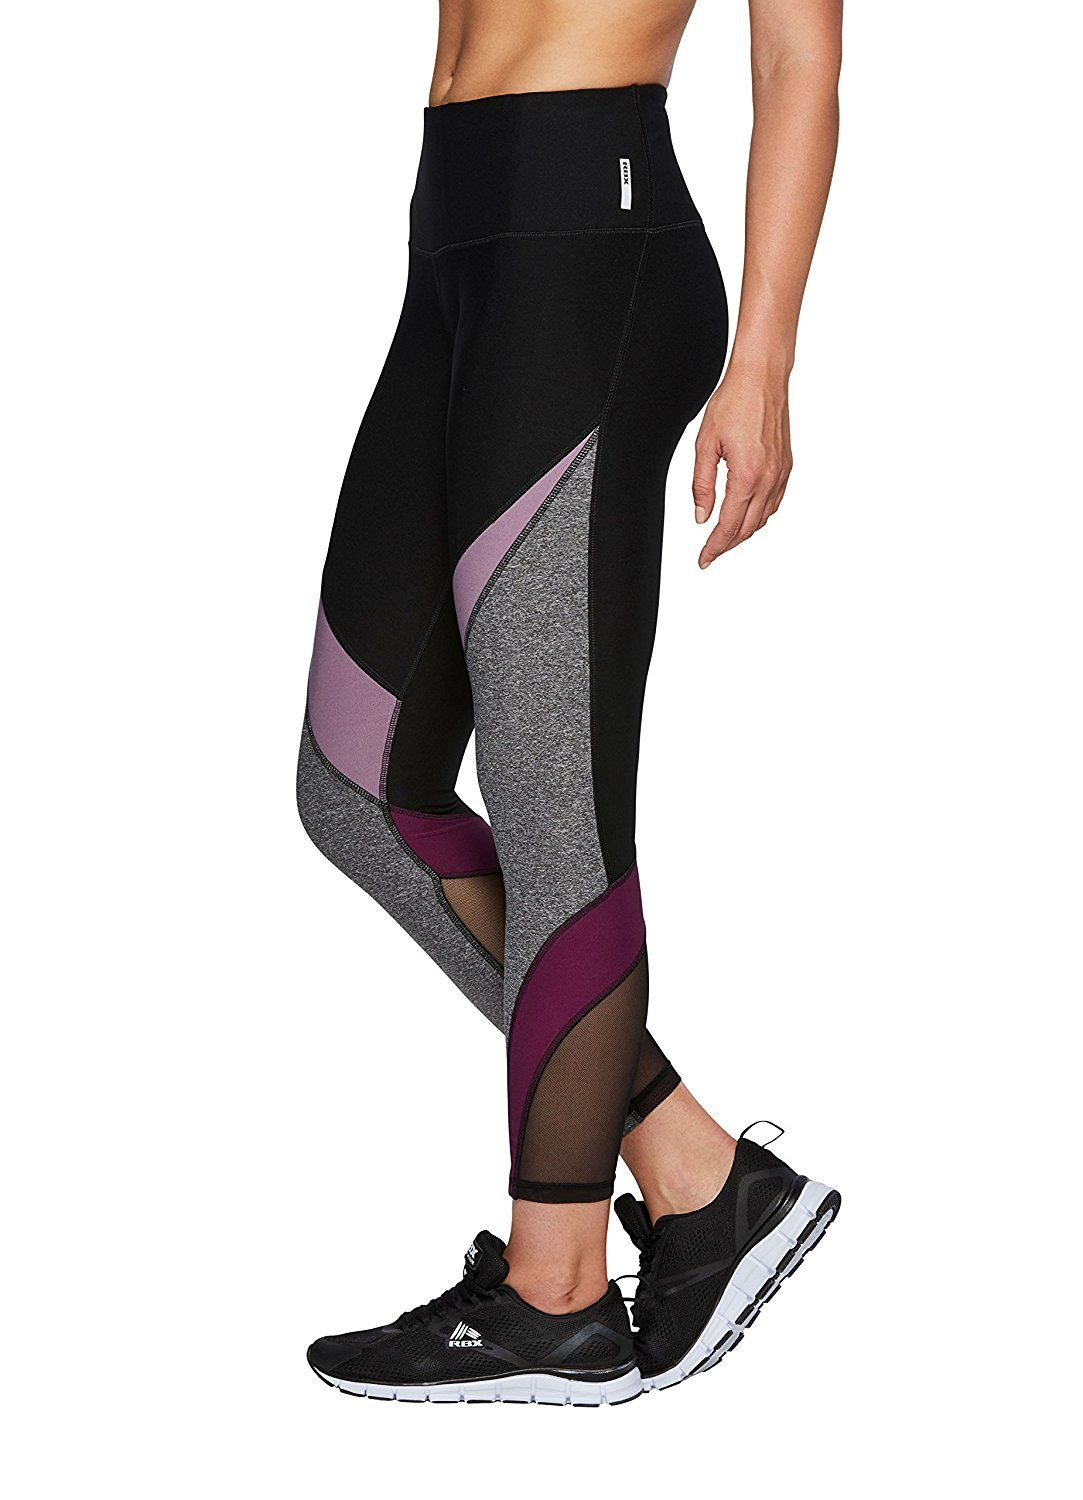 b5a0b47e6d9ab7 RBX Active Spliced Color Block Leggings w/Mesh Inserts *** You can find  more details by visiting the image link.